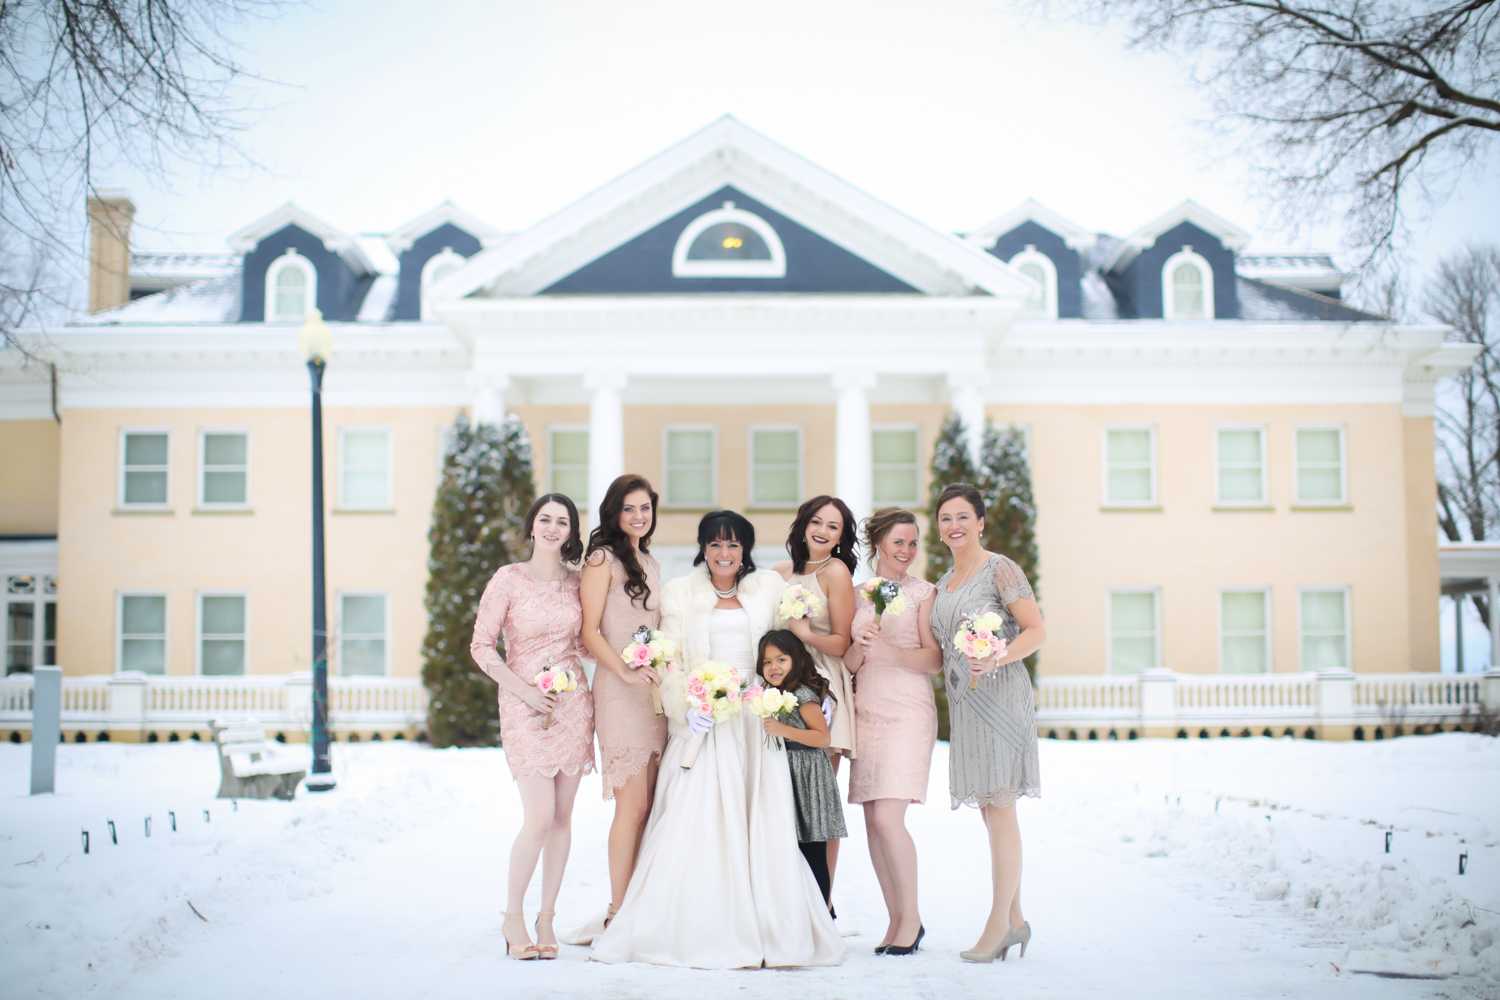 Winter wedding at the Daly Mansion-3331.jpg